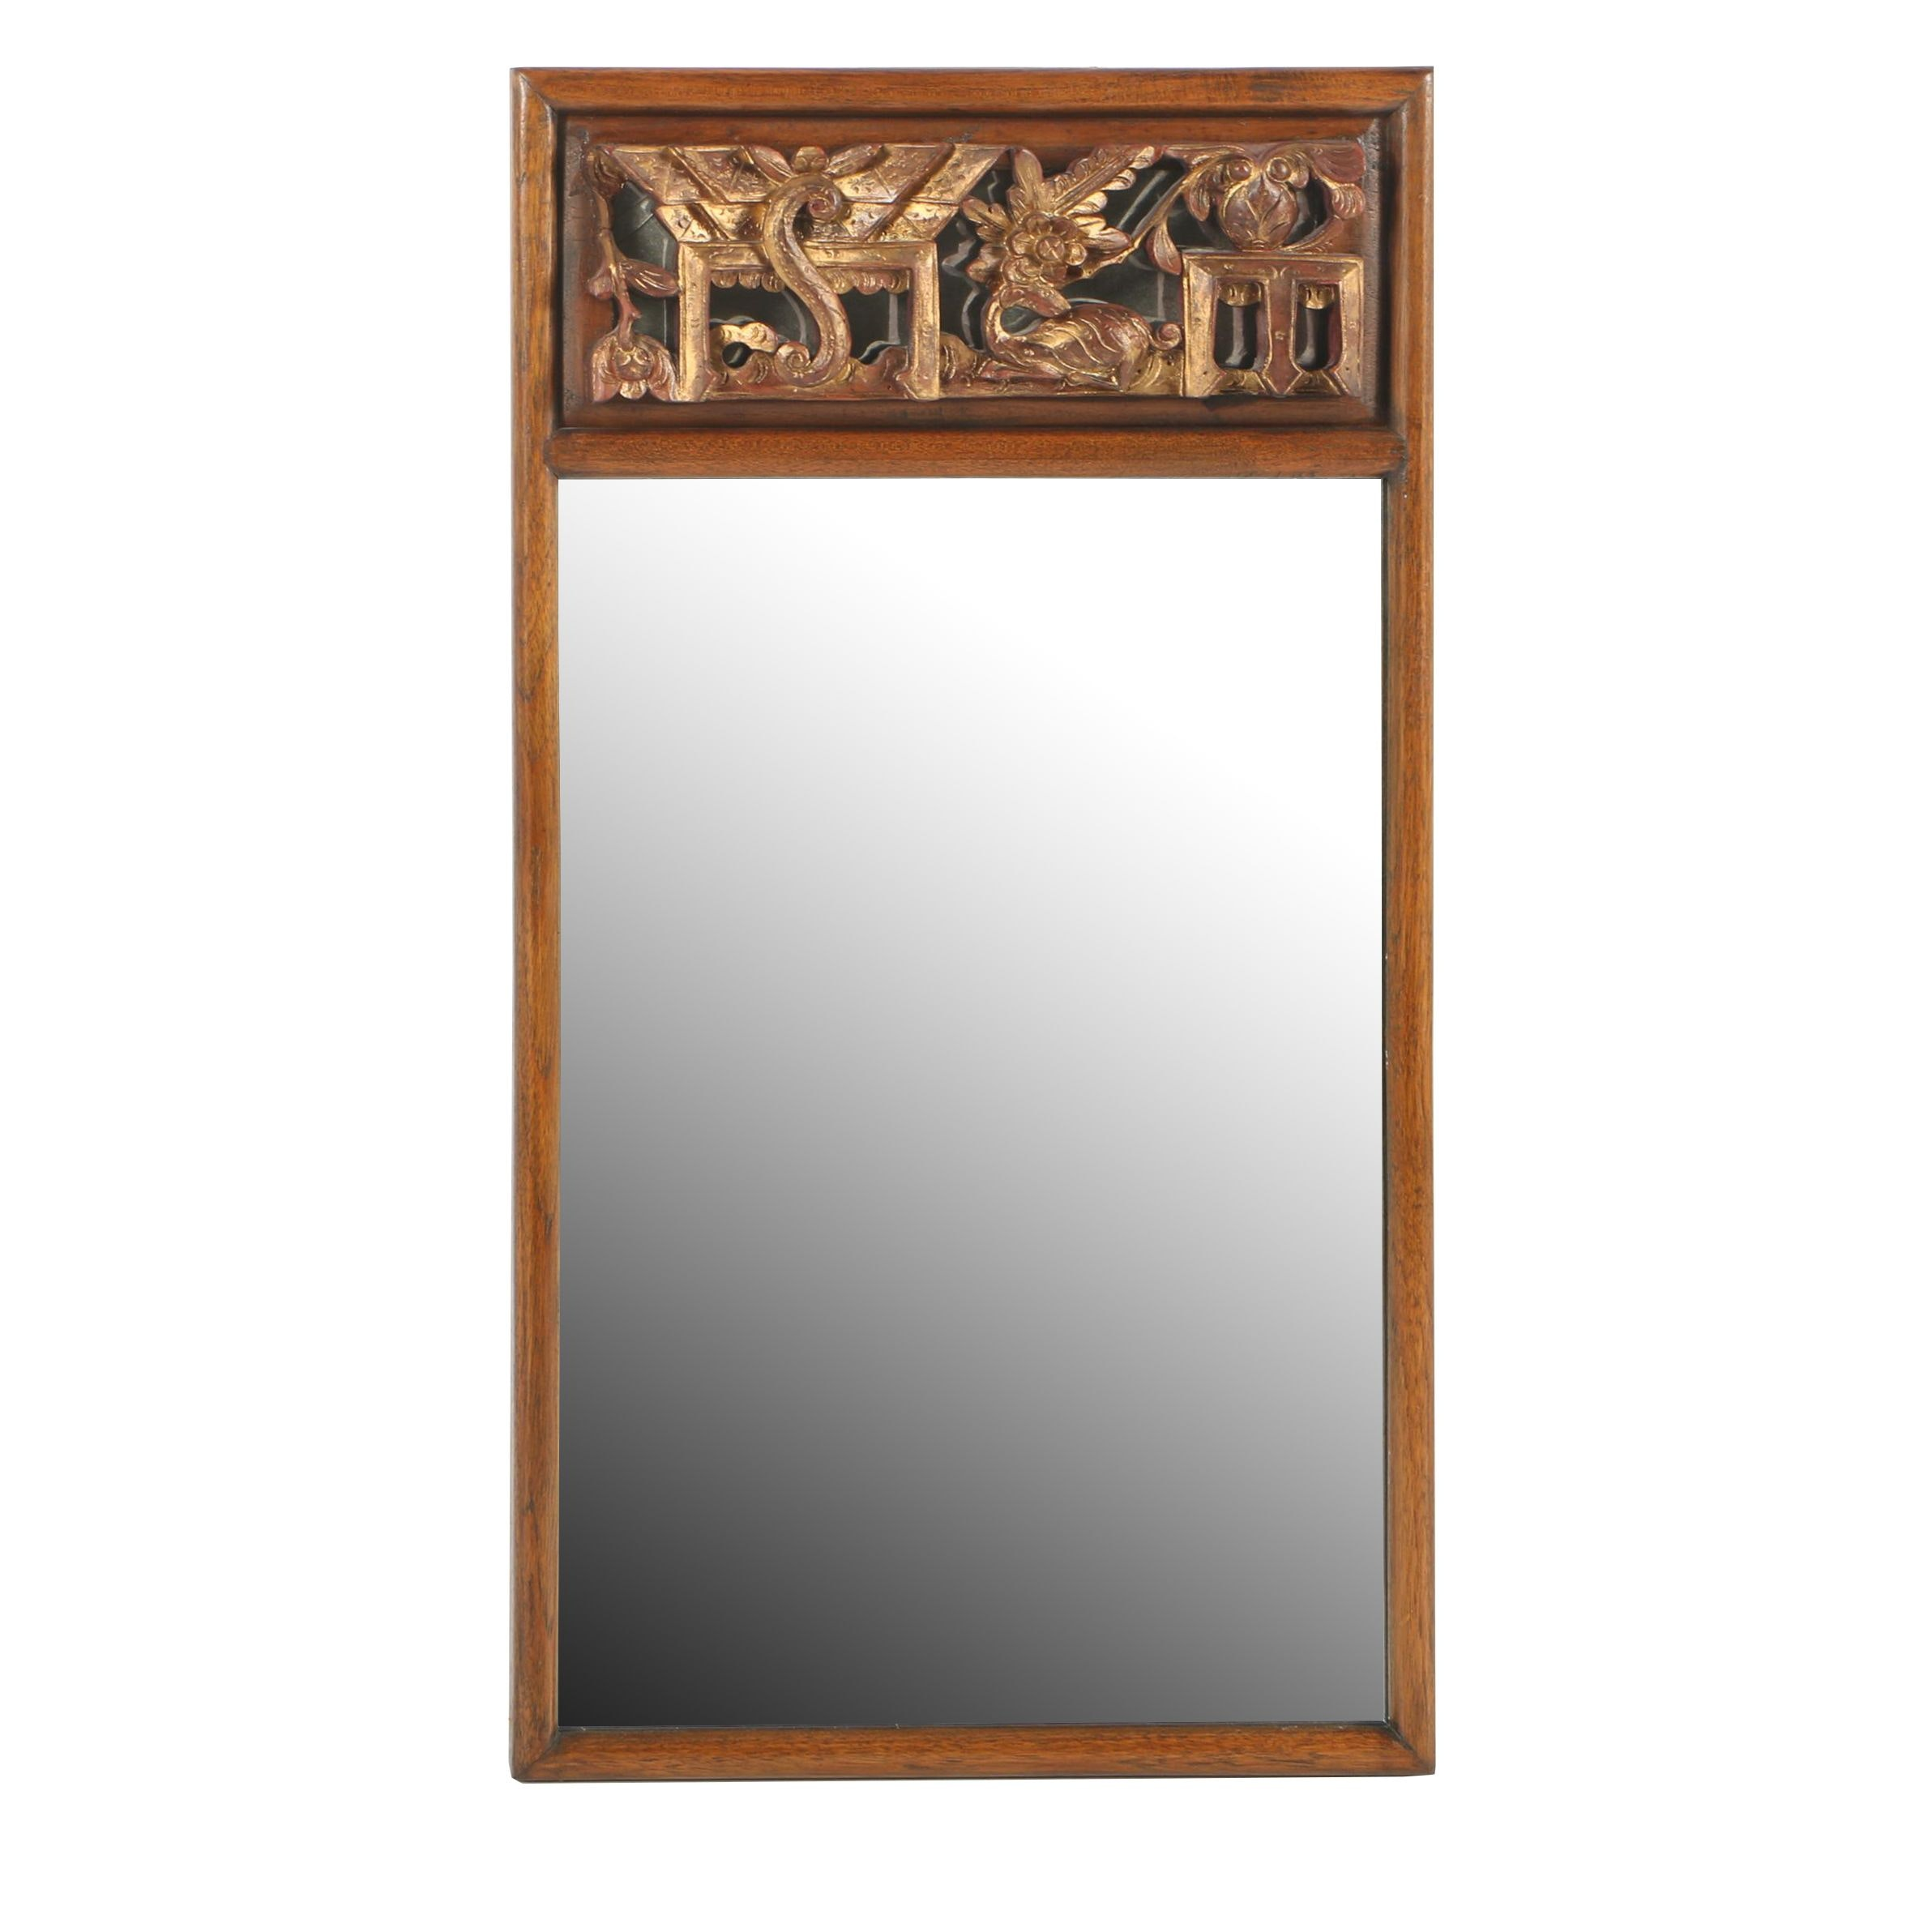 Oak Framed Wall Mirror with Reticulated Carved Panel with Gilt Accents